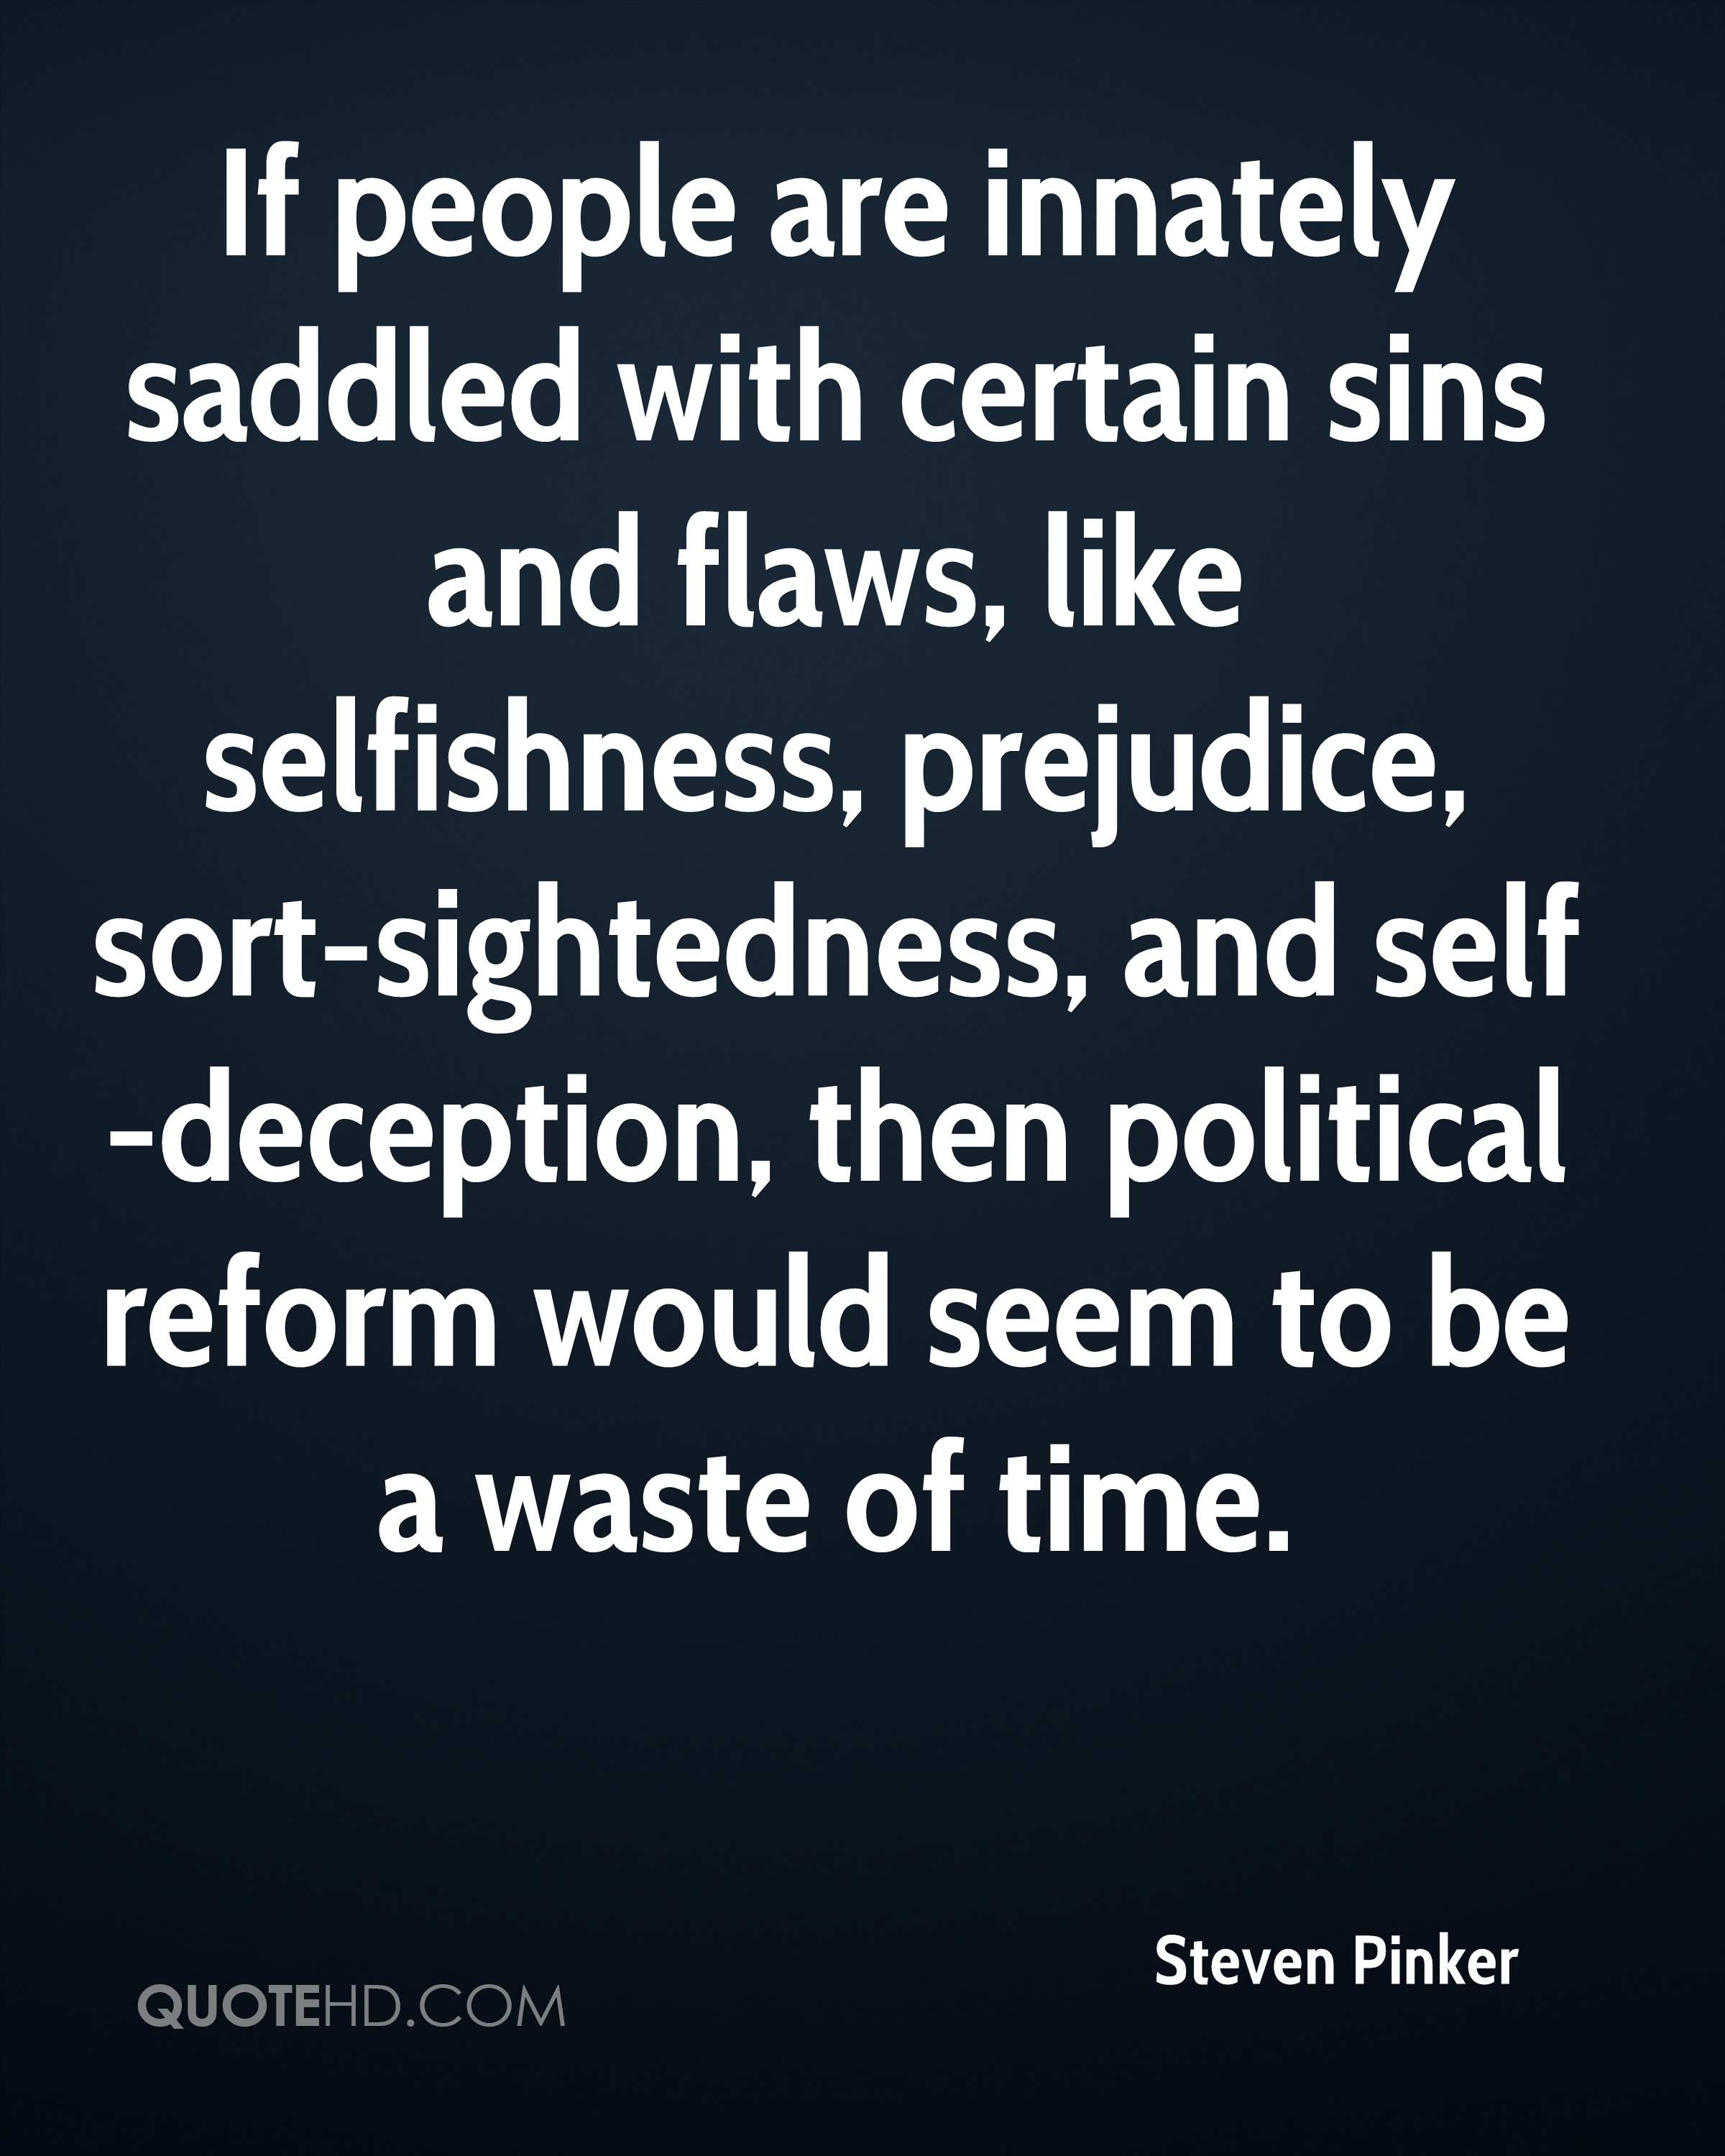 If people are innately saddled with certain sins and flaws, like selfishness, prejudice, sort-sightedness, and self-deception, then political reform would seem to be a waste of time.